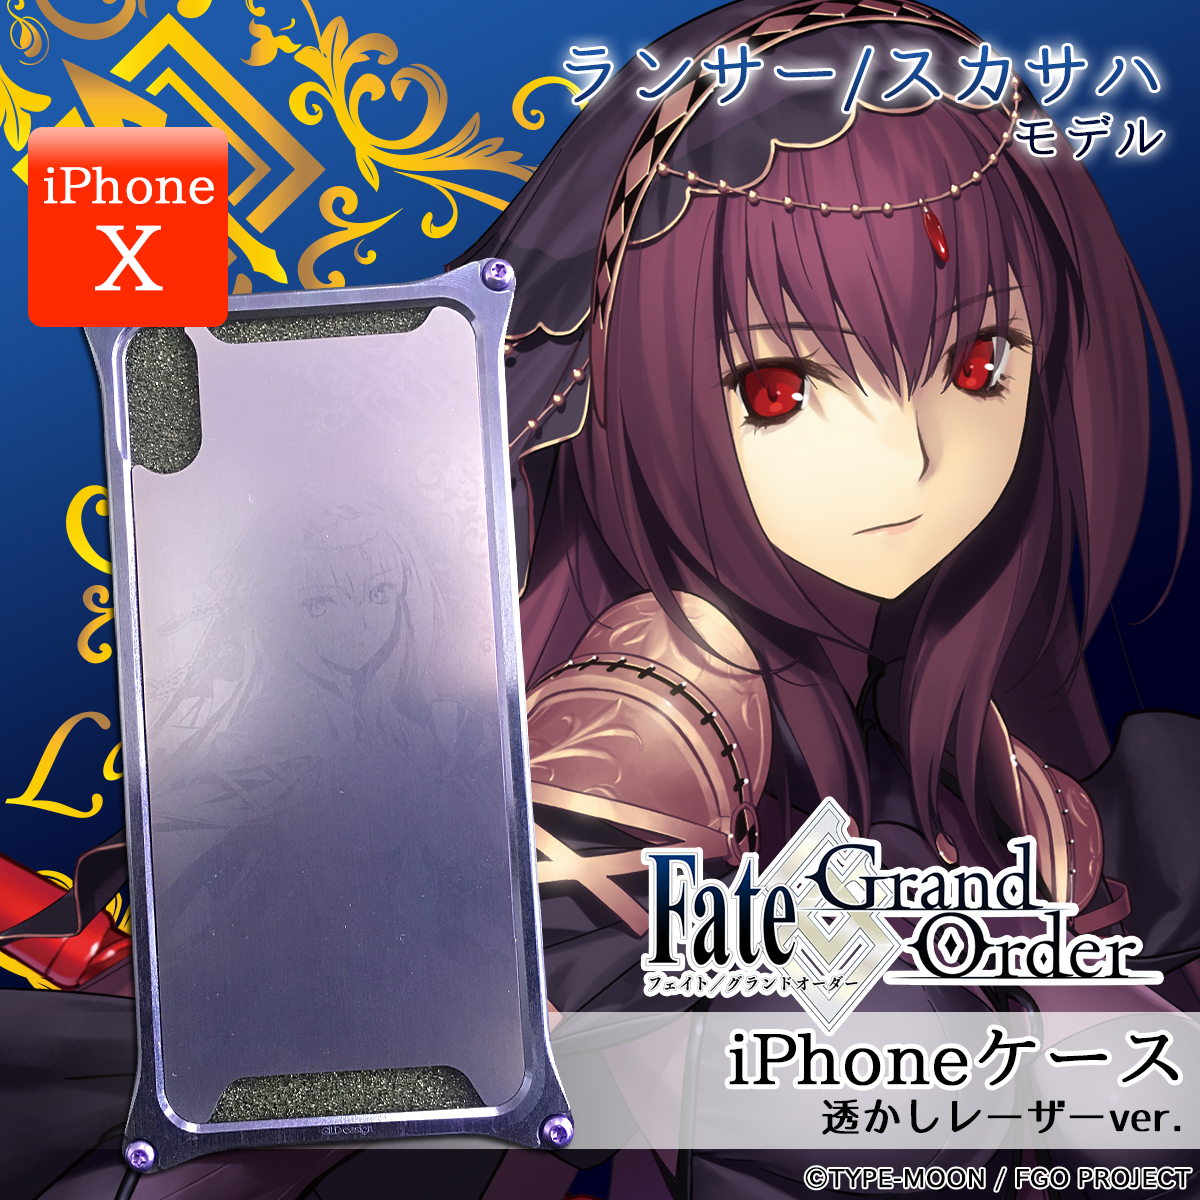 『Fate/Grand Order』×『GILD design』iPhoneX/Xsケース ランサー/スカサハ 透かしレーザーver.